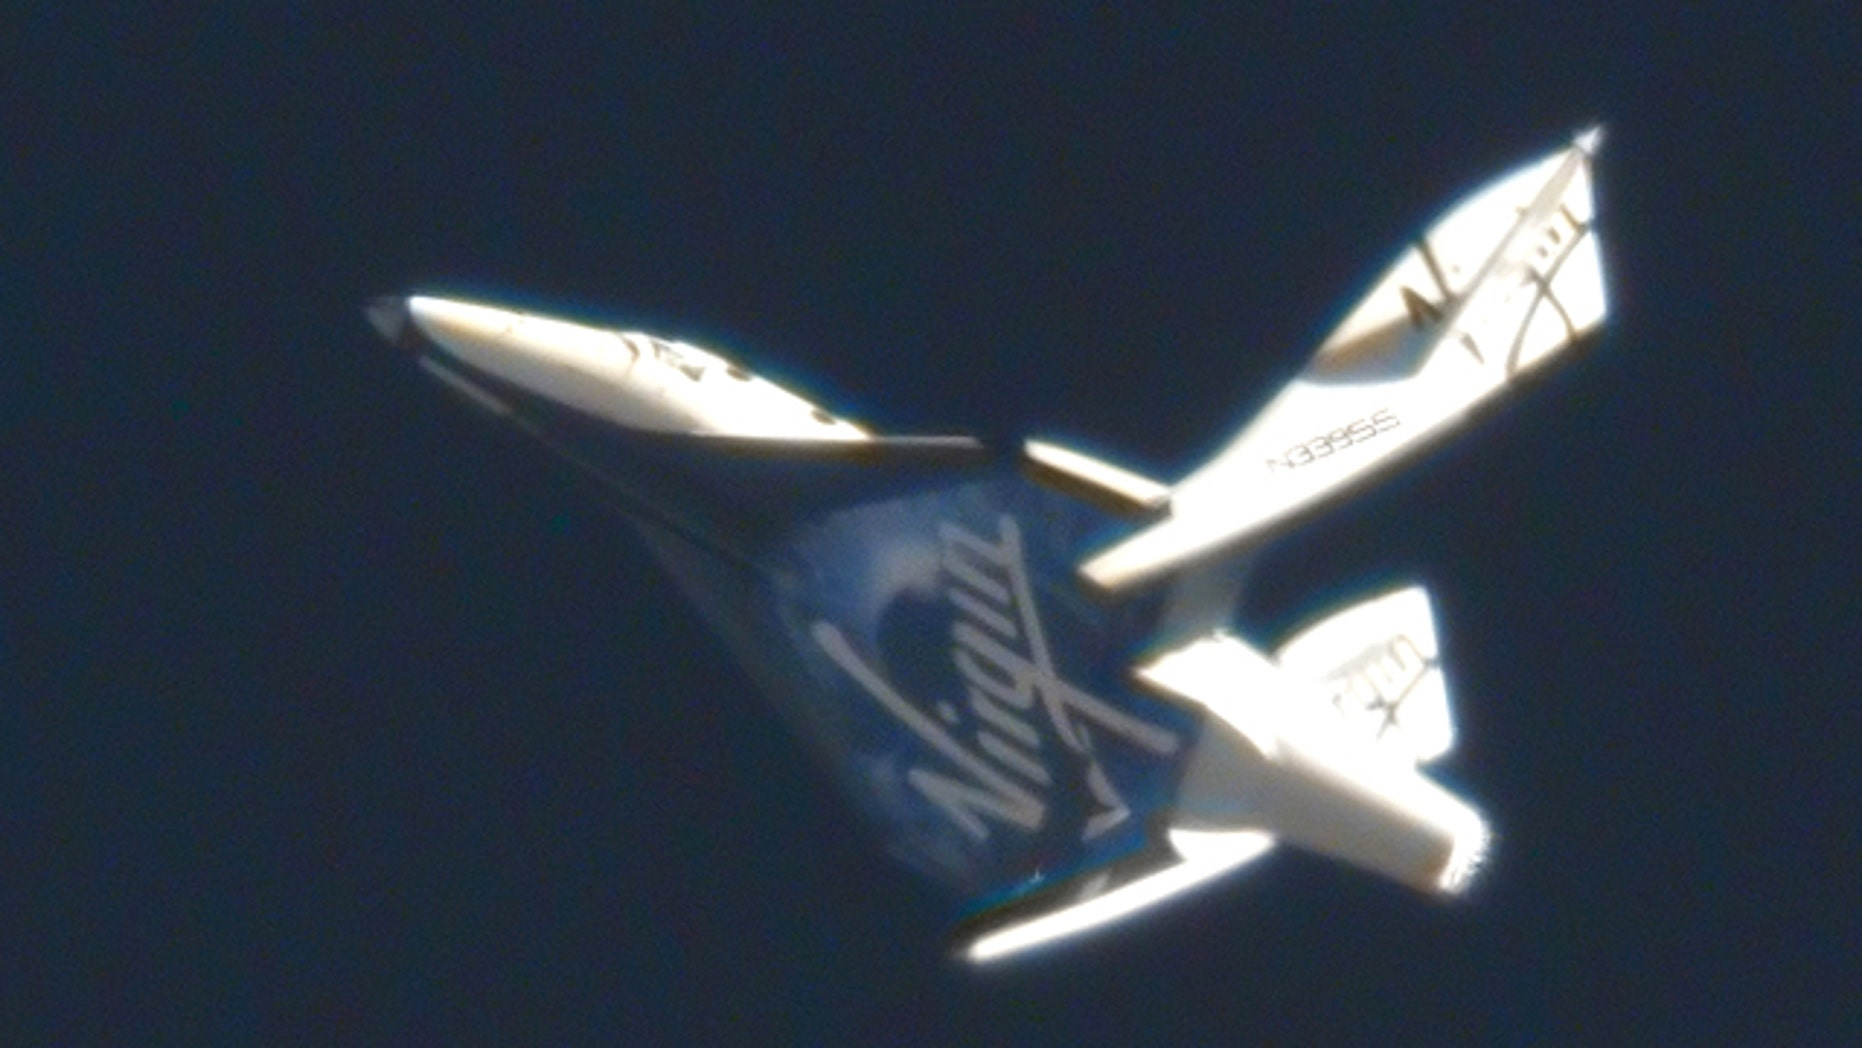 May 4, 2011: Virgin Galactic's suborbital passenger ship SpaceShipTwo flexes its feathered re-entry system during a pivotal glide test at the Mojave Air and Space Port in California.